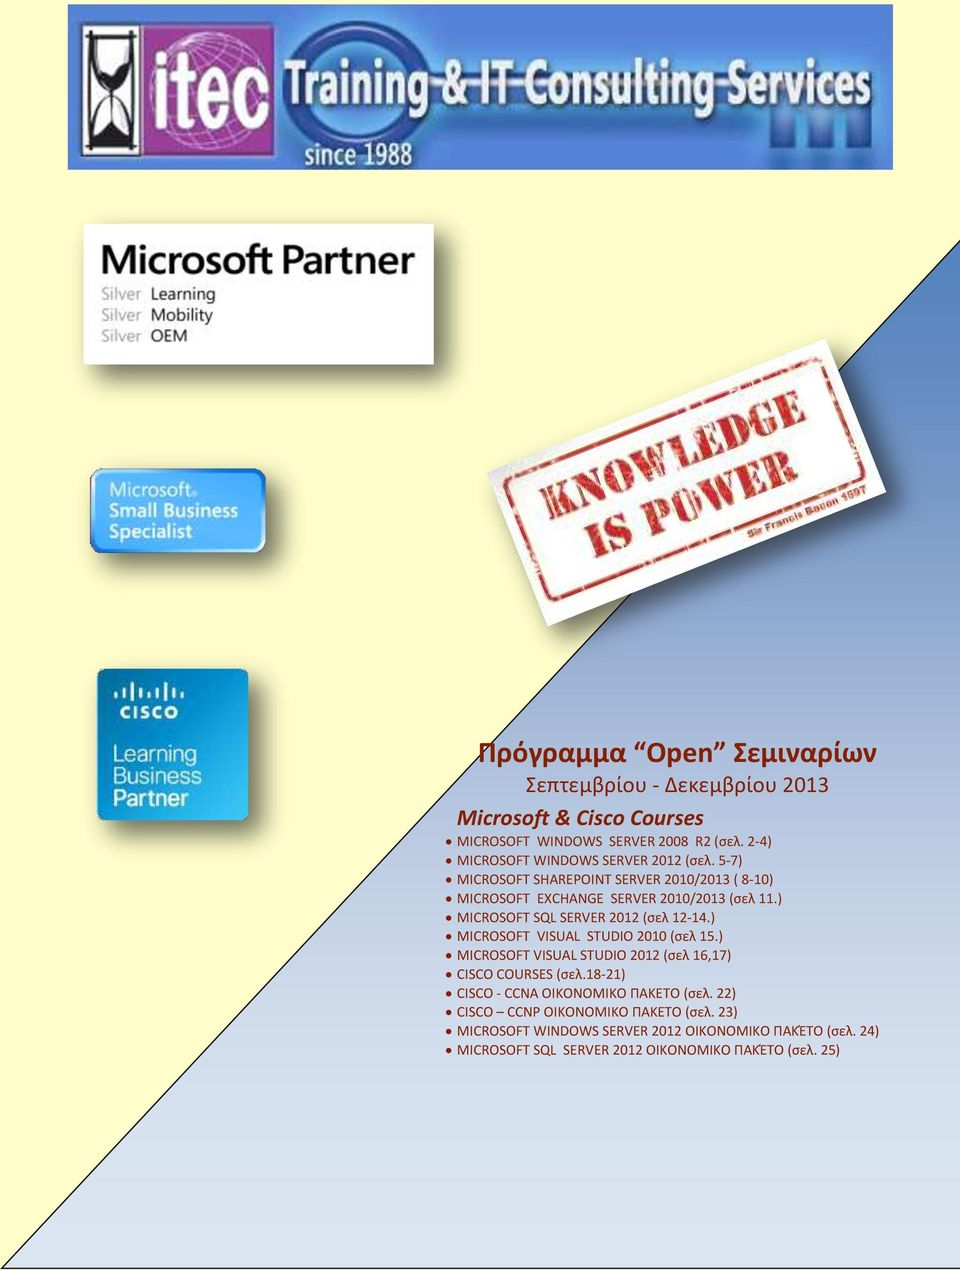 ) MICROSOFT VISUAL STUDIO 2010 (σελ 15.) MICROSOFT VISUAL STUDIO 2012 (σελ 16,17) CISCO COURSES (σελ.18-21) CISCO - CCNA ΟΙΚΟΝΟΜΙΚΟ ΠΑΚΕΤΟ (σελ.